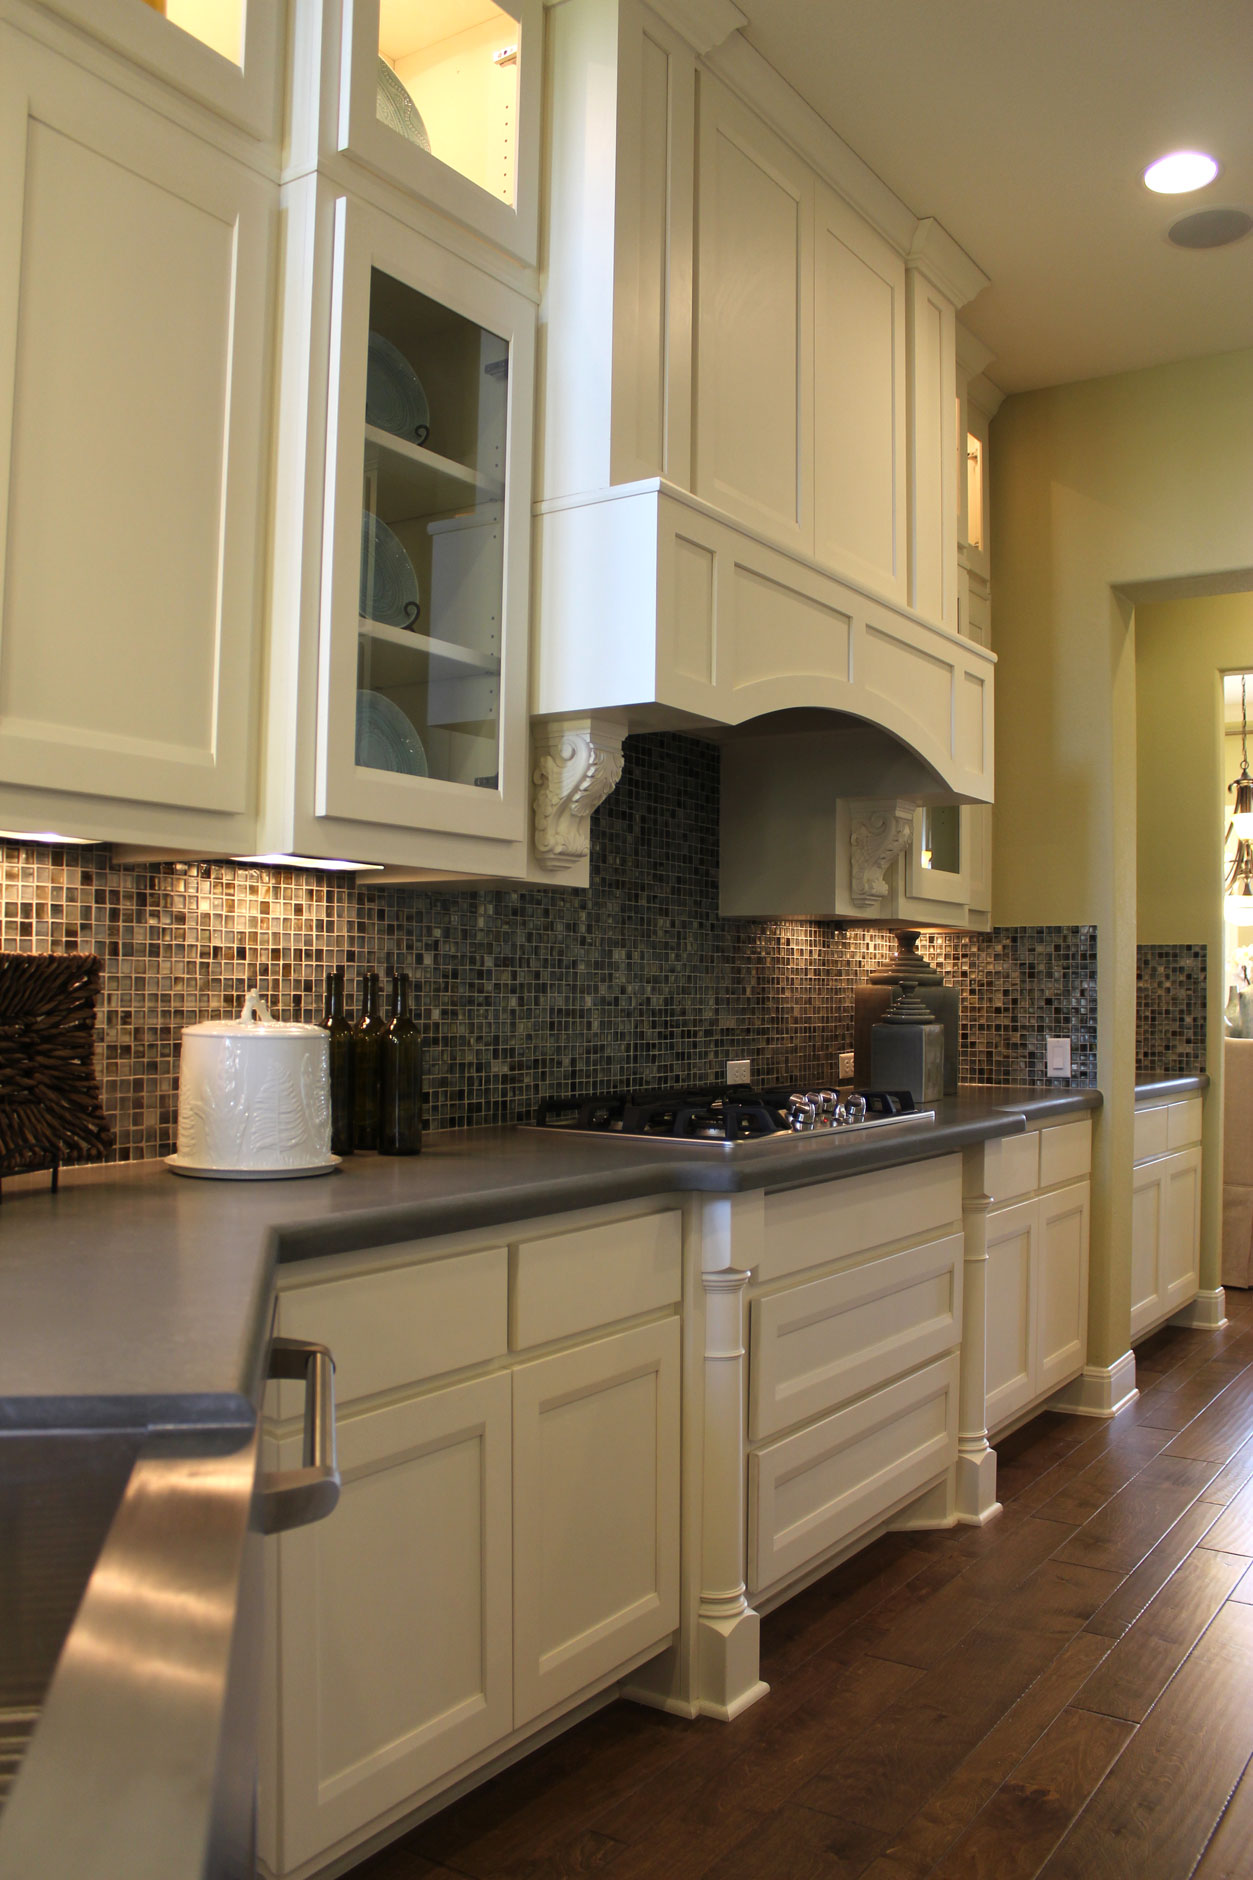 Burrows Cabinets kitchen cabinet 21 with Briscoe door style in Bone and Elite vent hood